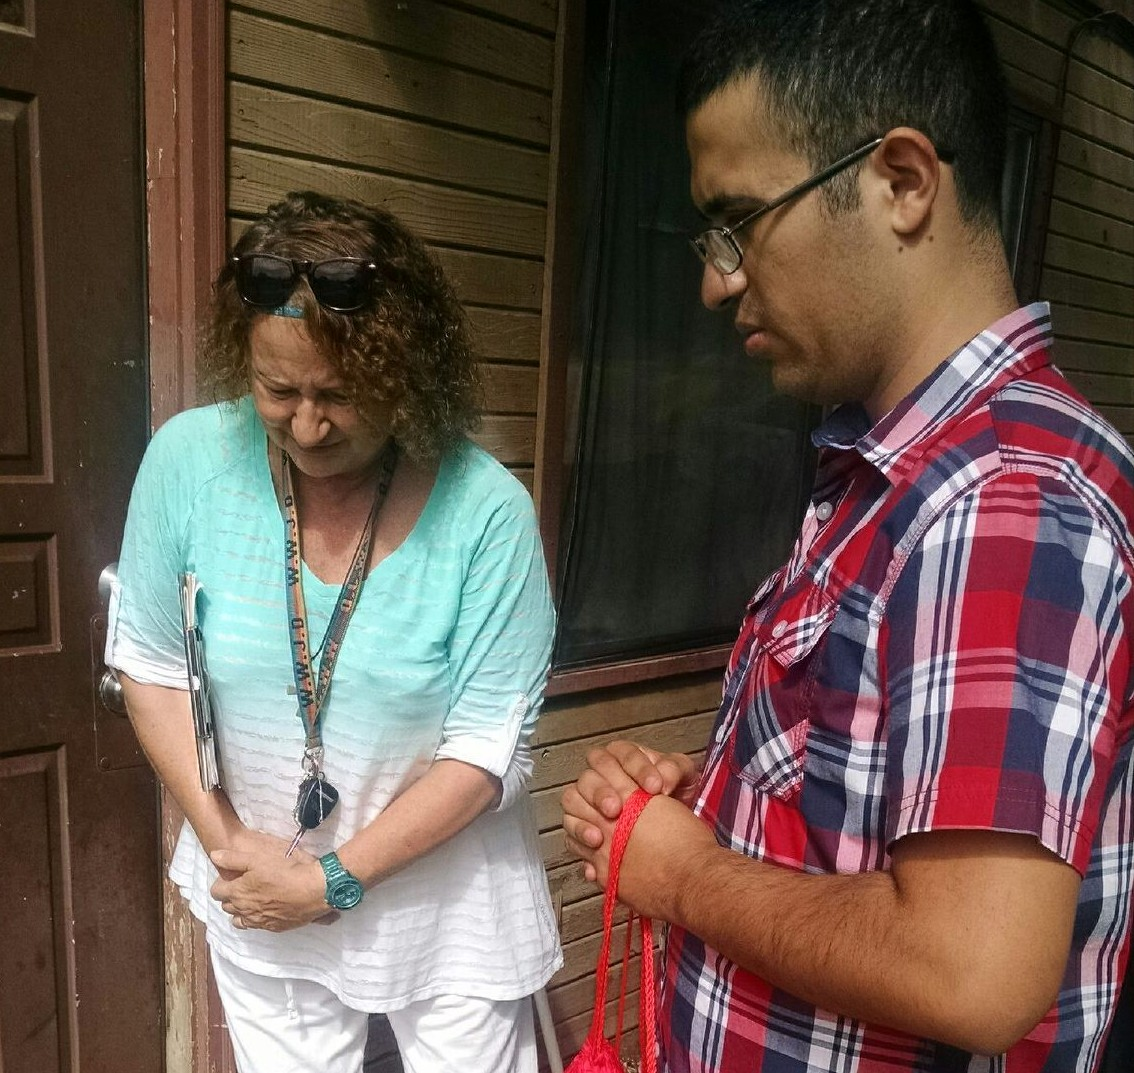 Team members Joanna Klepac and Carlos Lugo pray at a door before knocking.